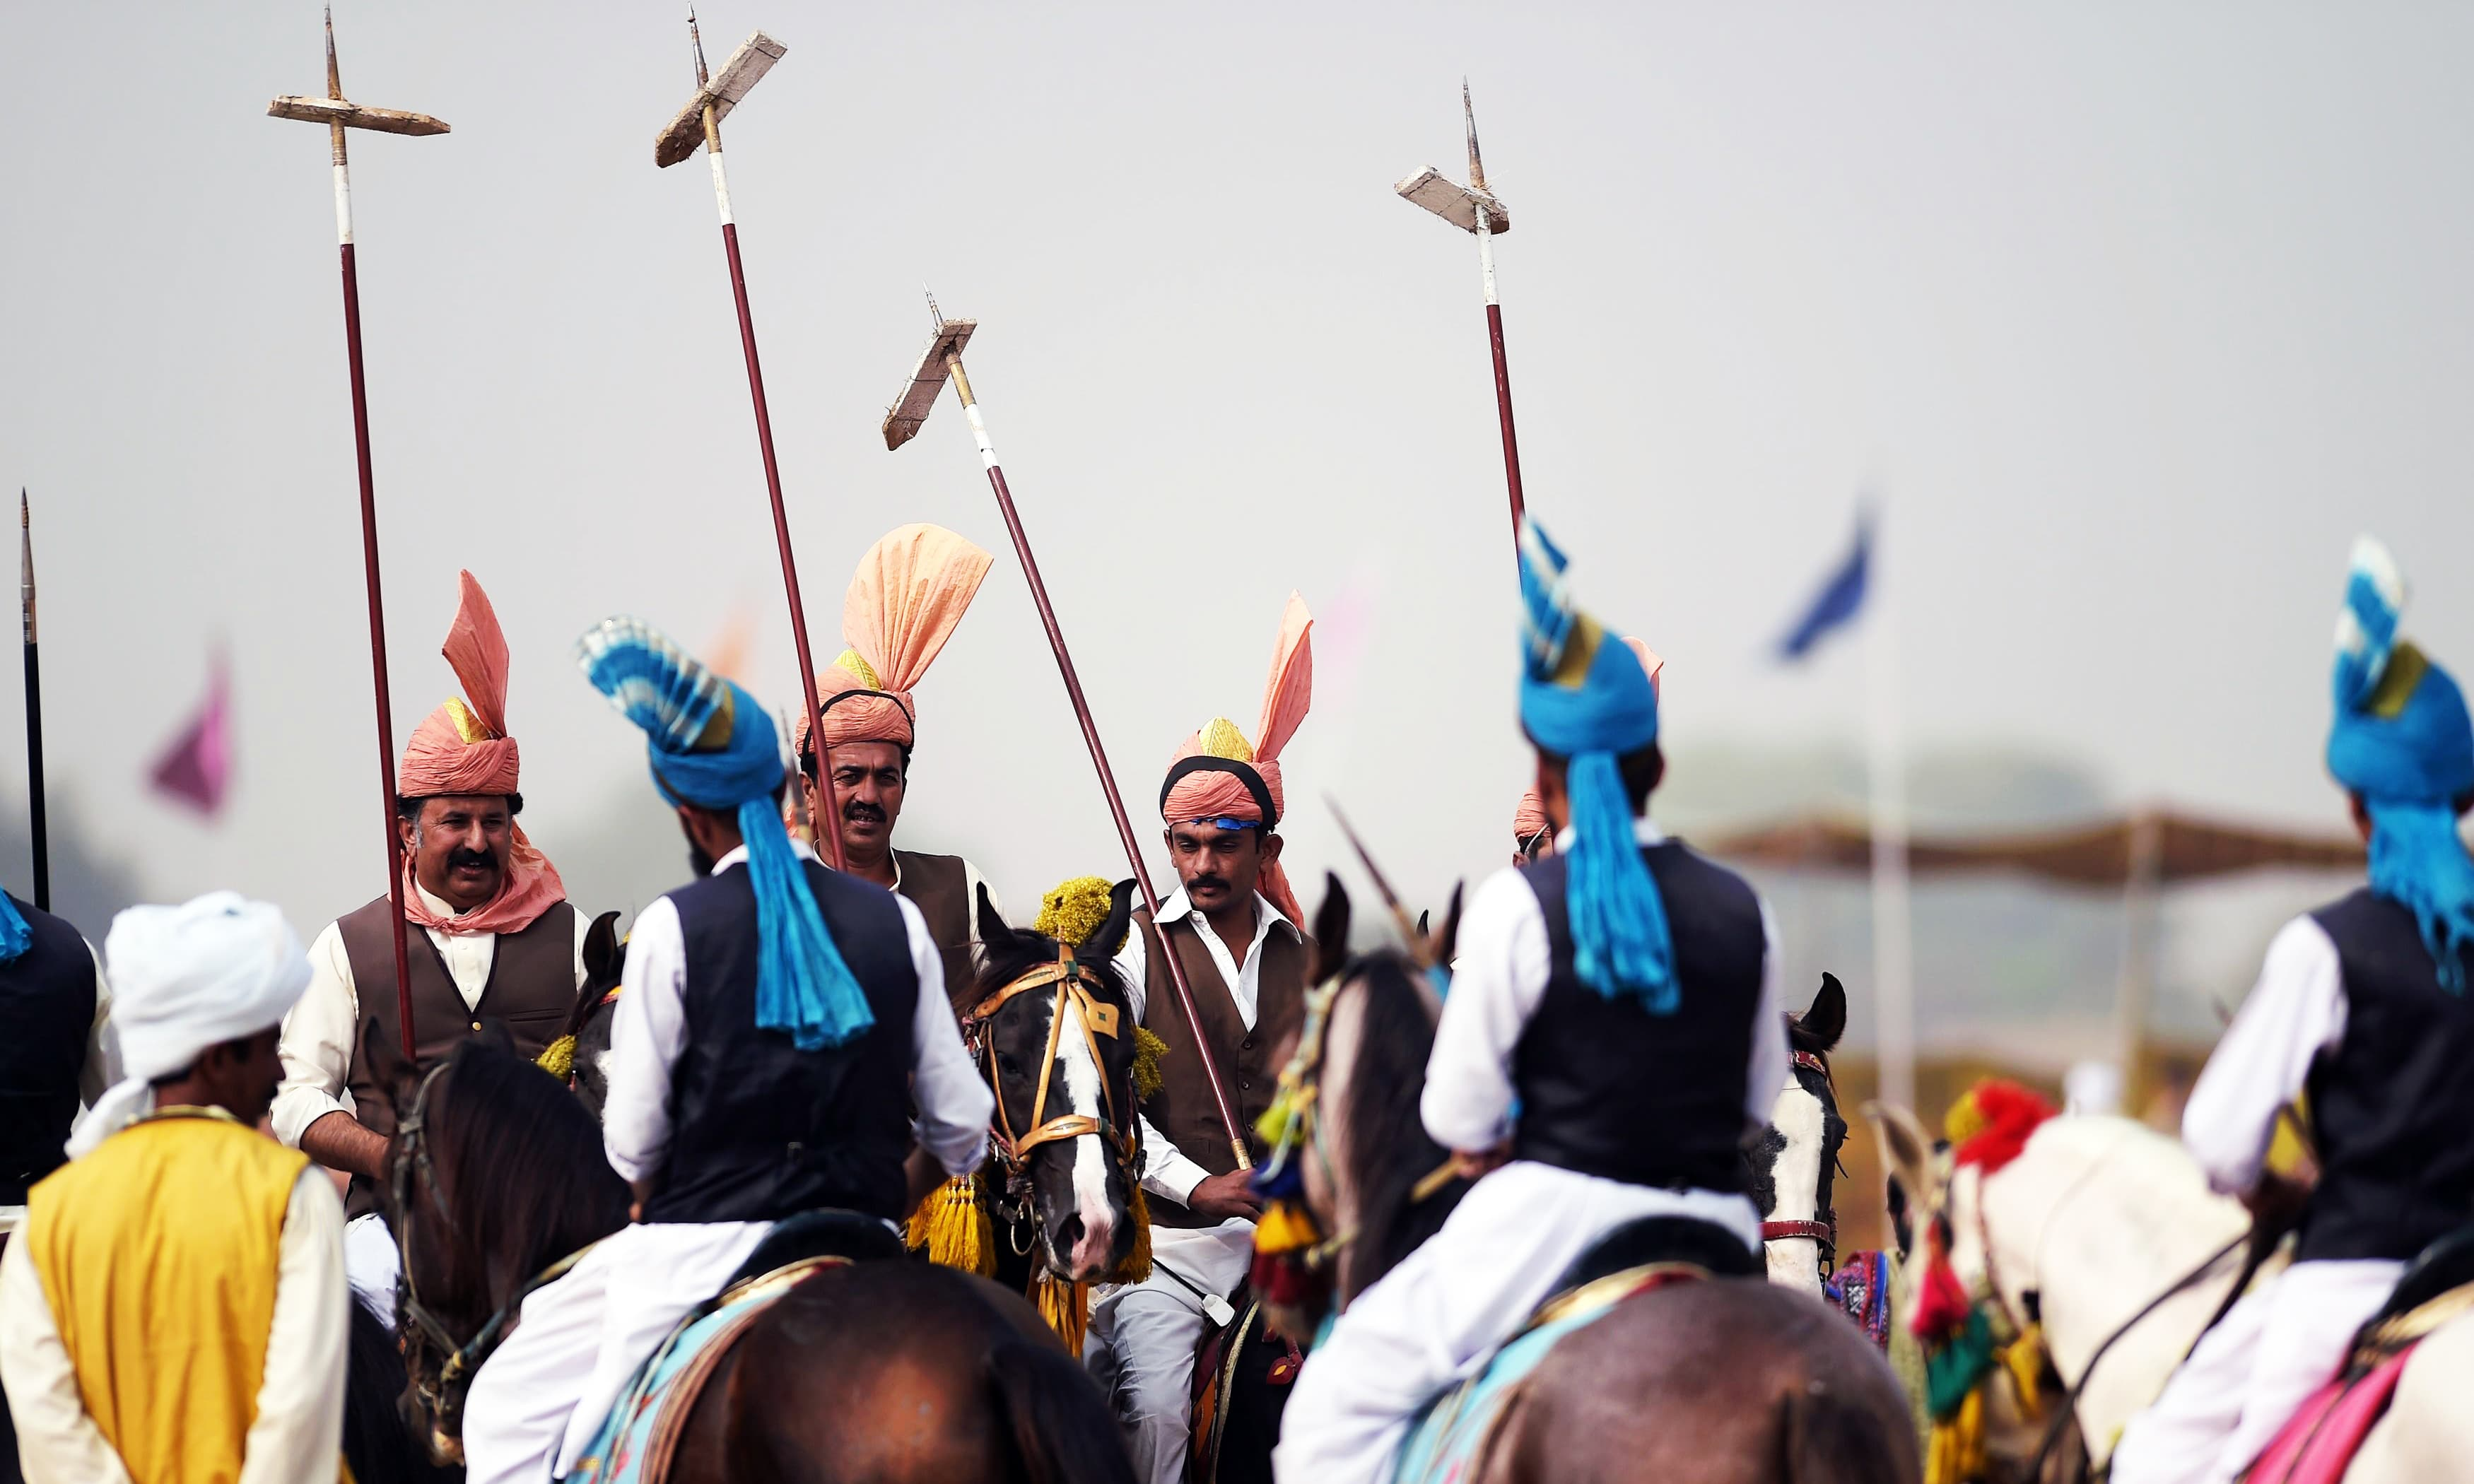 Festooned with garlands and colourful bridles, turbaned riders mounted on horseback in full gallop lower their lances at tiny wooden blocks as they practice the centuries-old tradition of tent-pegging. —AFP